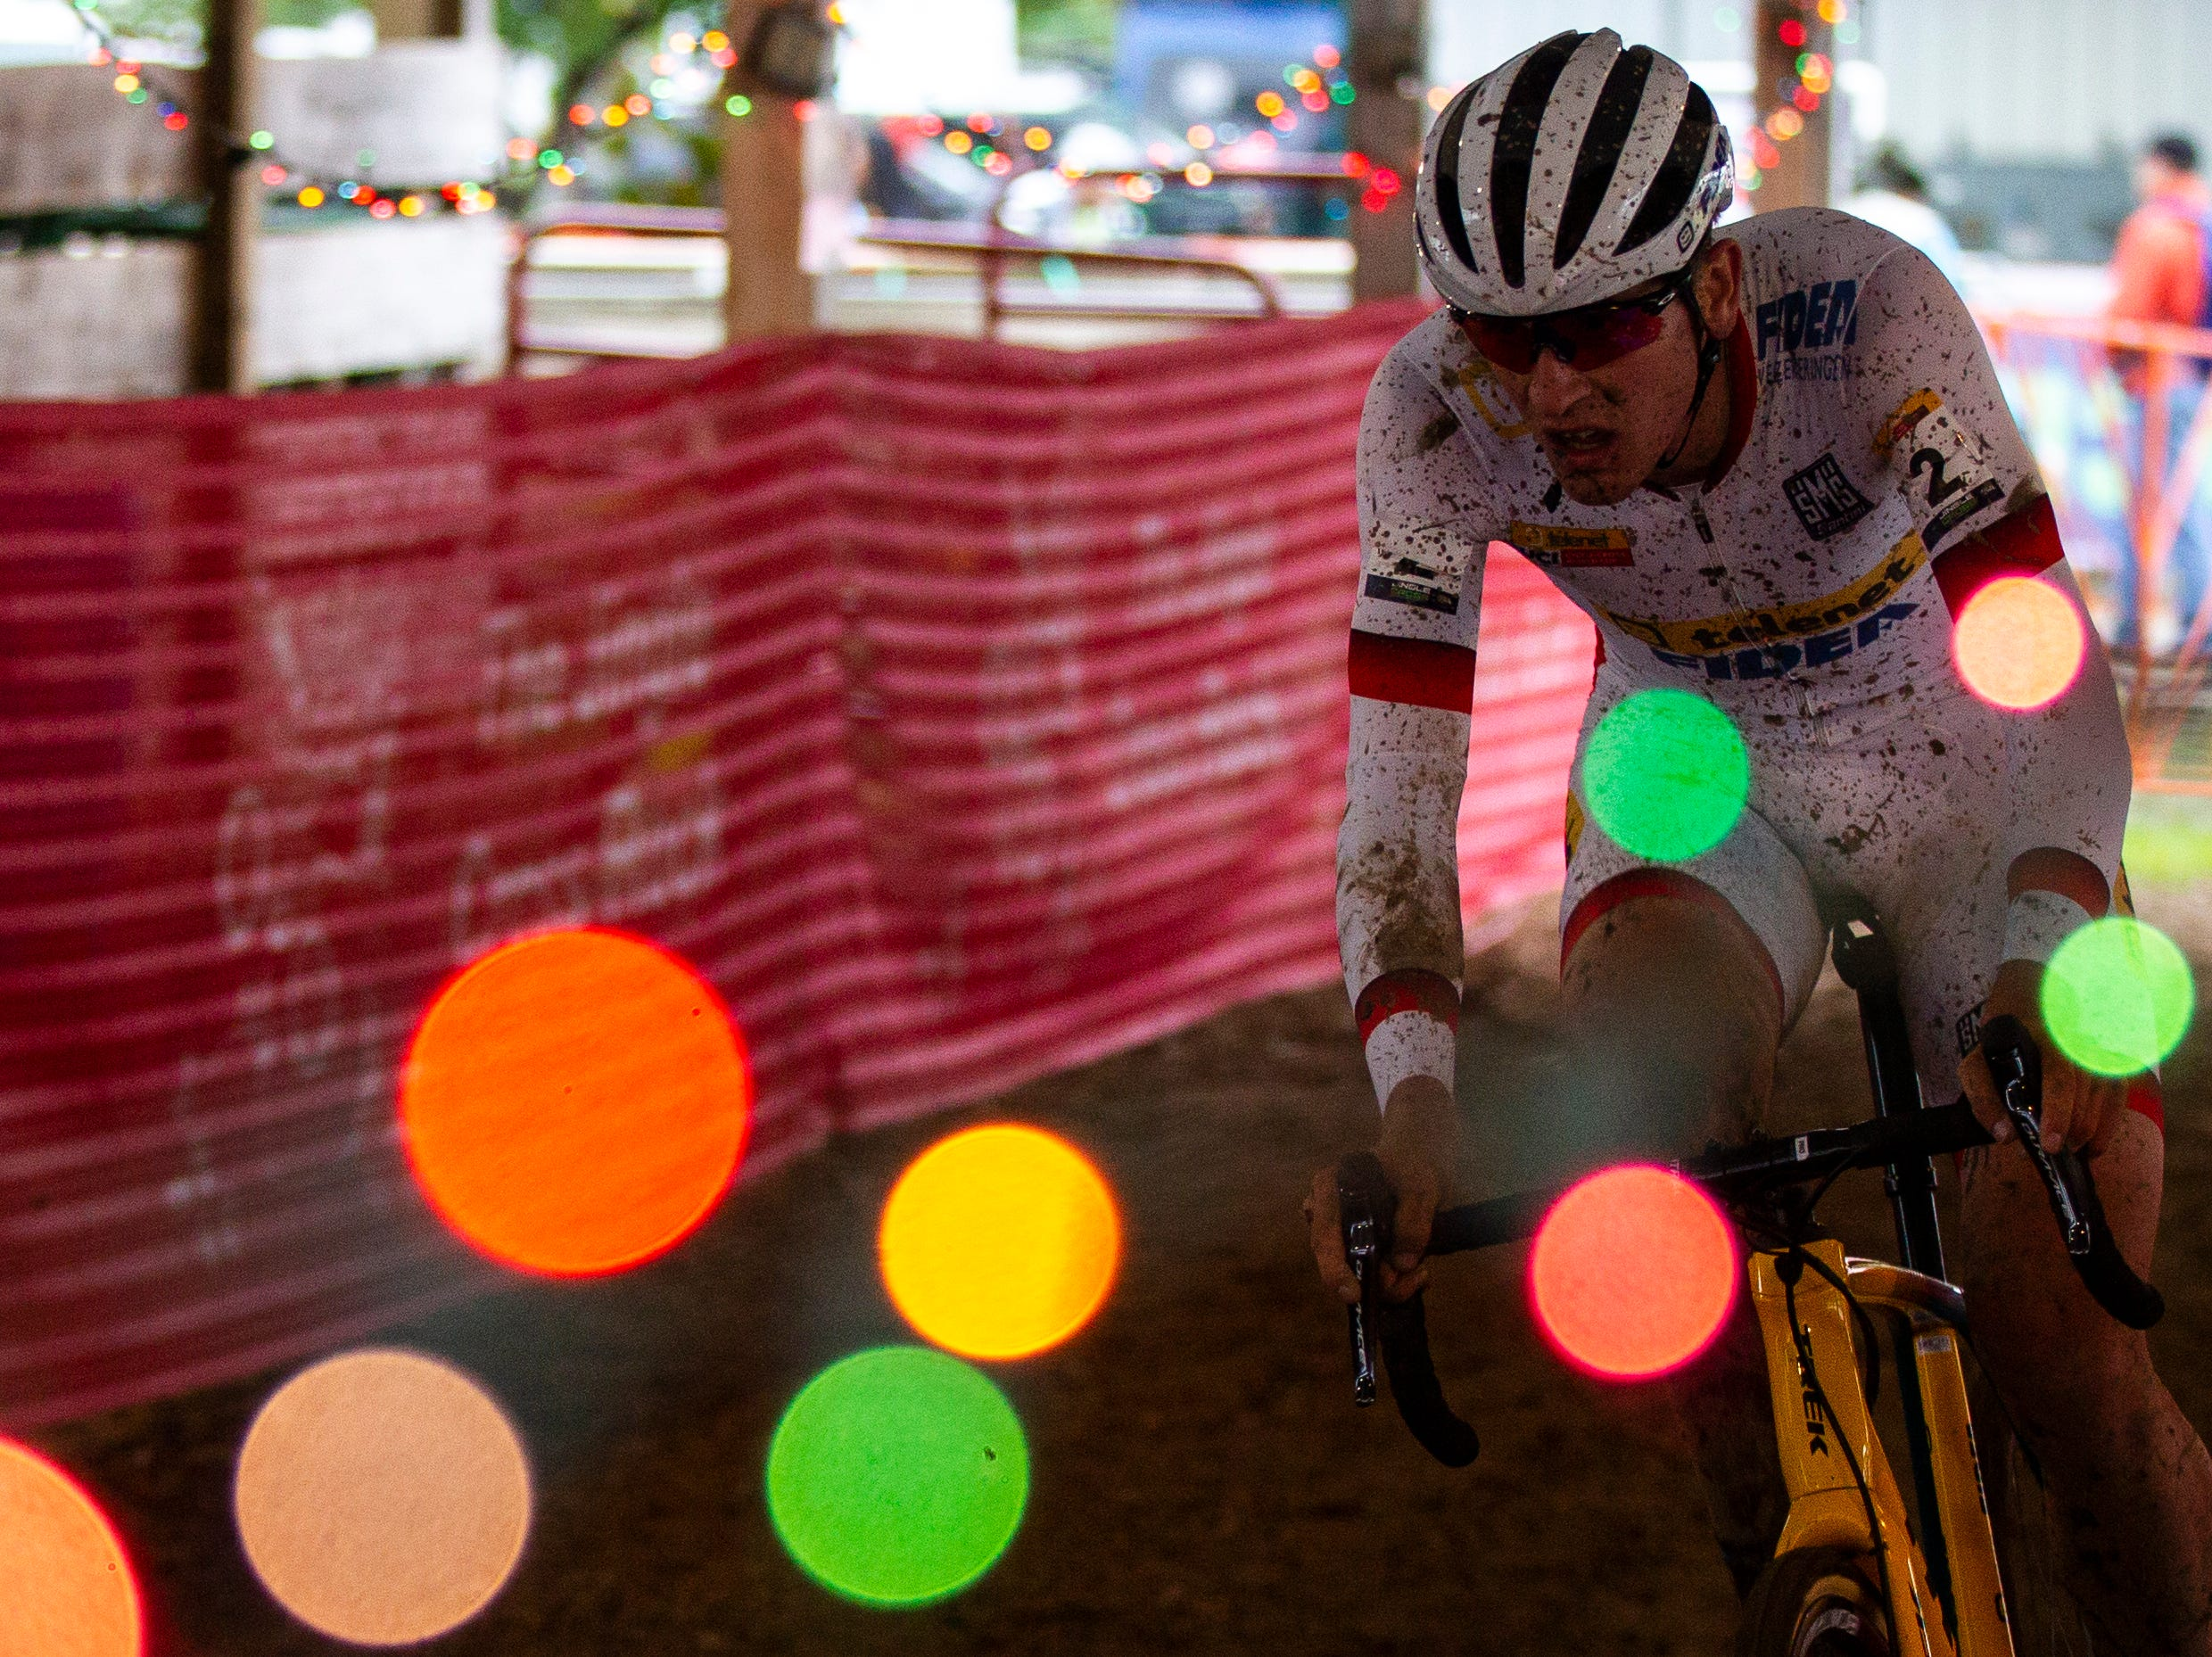 Toon Aerts of Belgium rides through a barn during the UCI Cyclo-Cross World Cup elite men's race on Saturday, Sept. 29, 2018, at the Johnson County Fairgrounds in Iowa City.